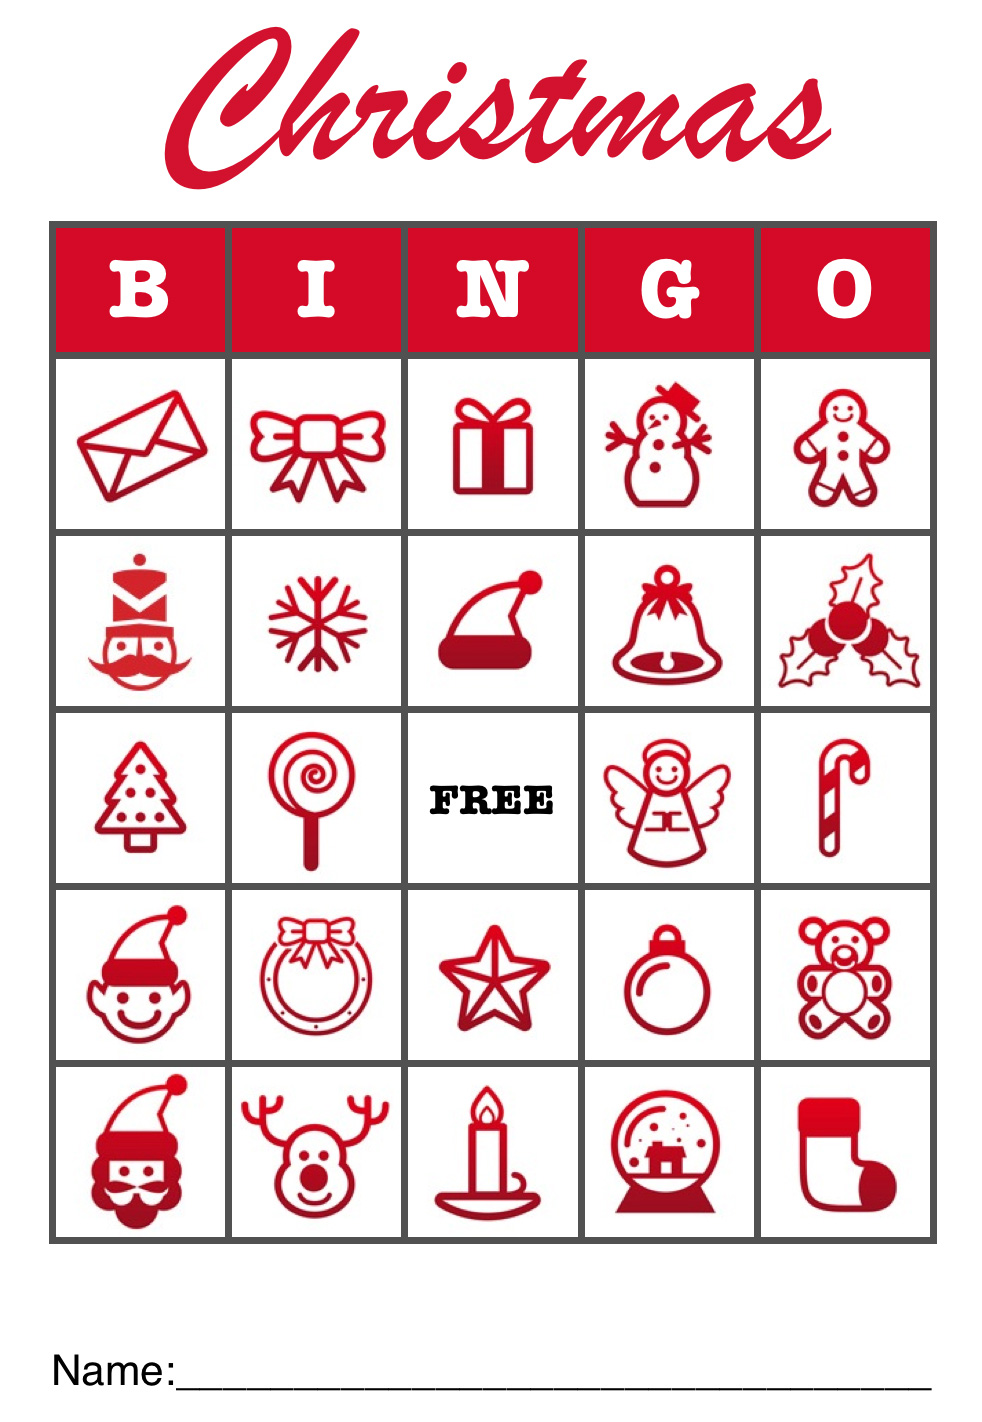 5 Images of Office Christmas Bingo Printable